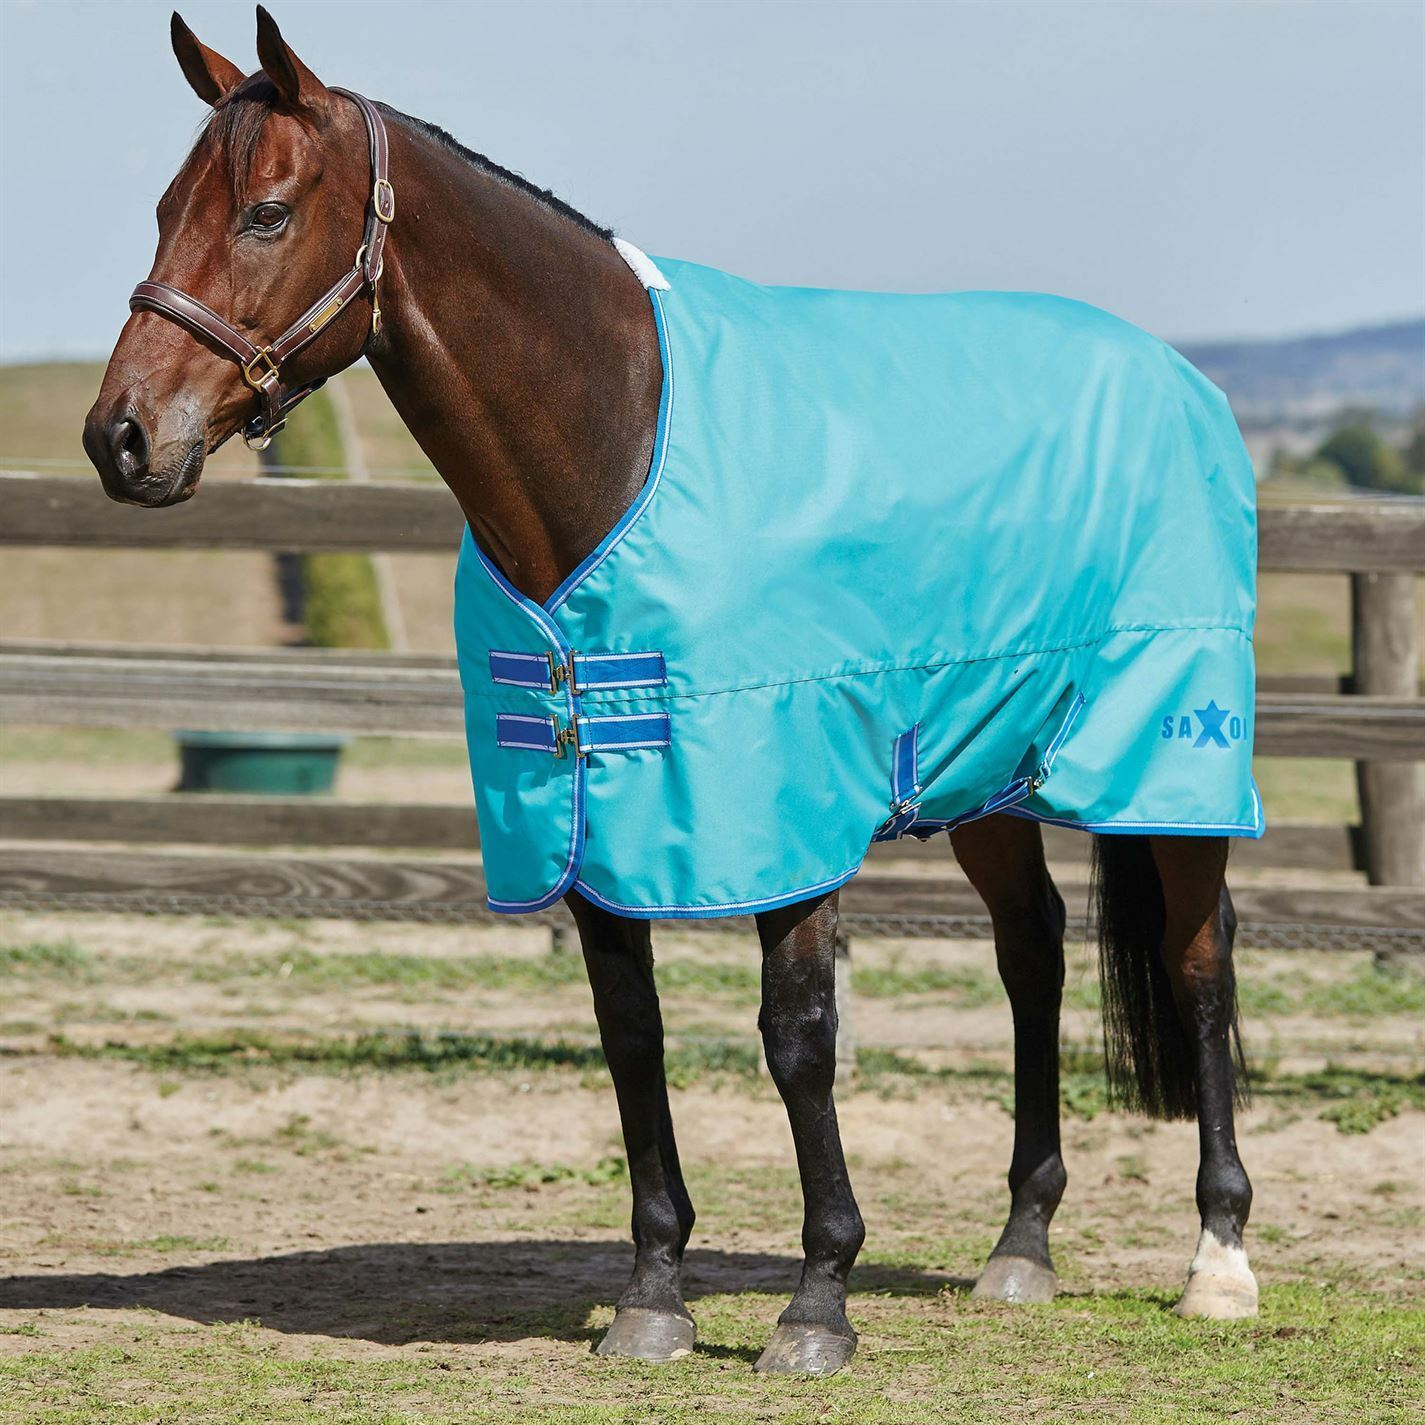 Saxon Standard Lite Turnout Rug Waterproof Breathable Lightweight Equestrian